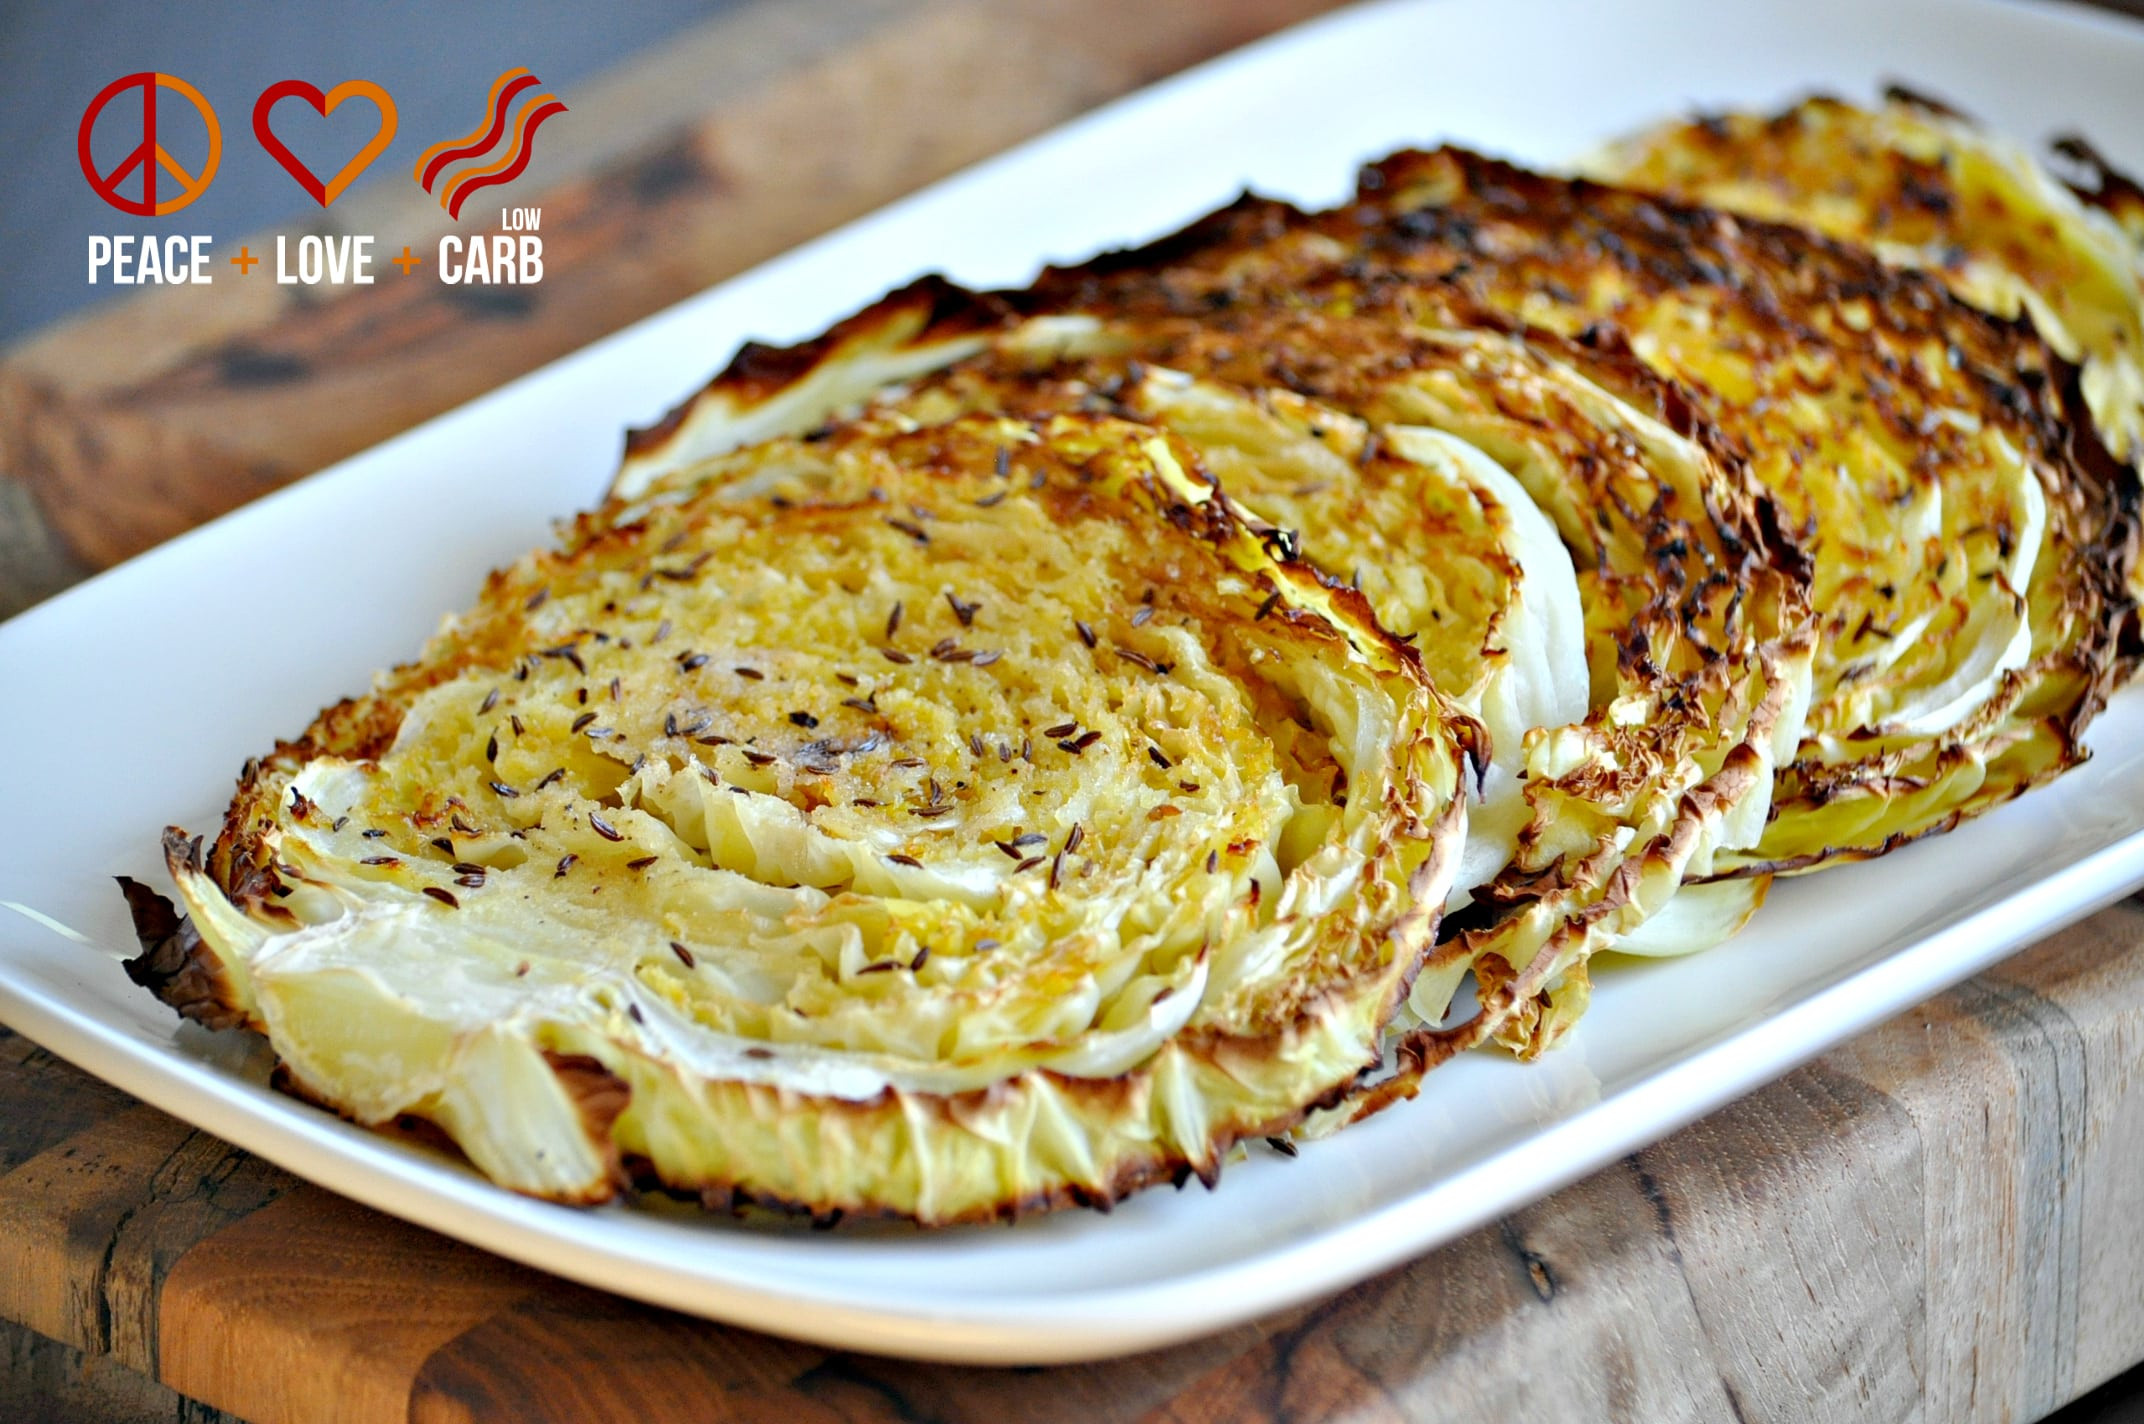 Low Carb Cabbage Recipes  Oven Roasted Cabbage Wedges Low Carb Paleo Gluten Free